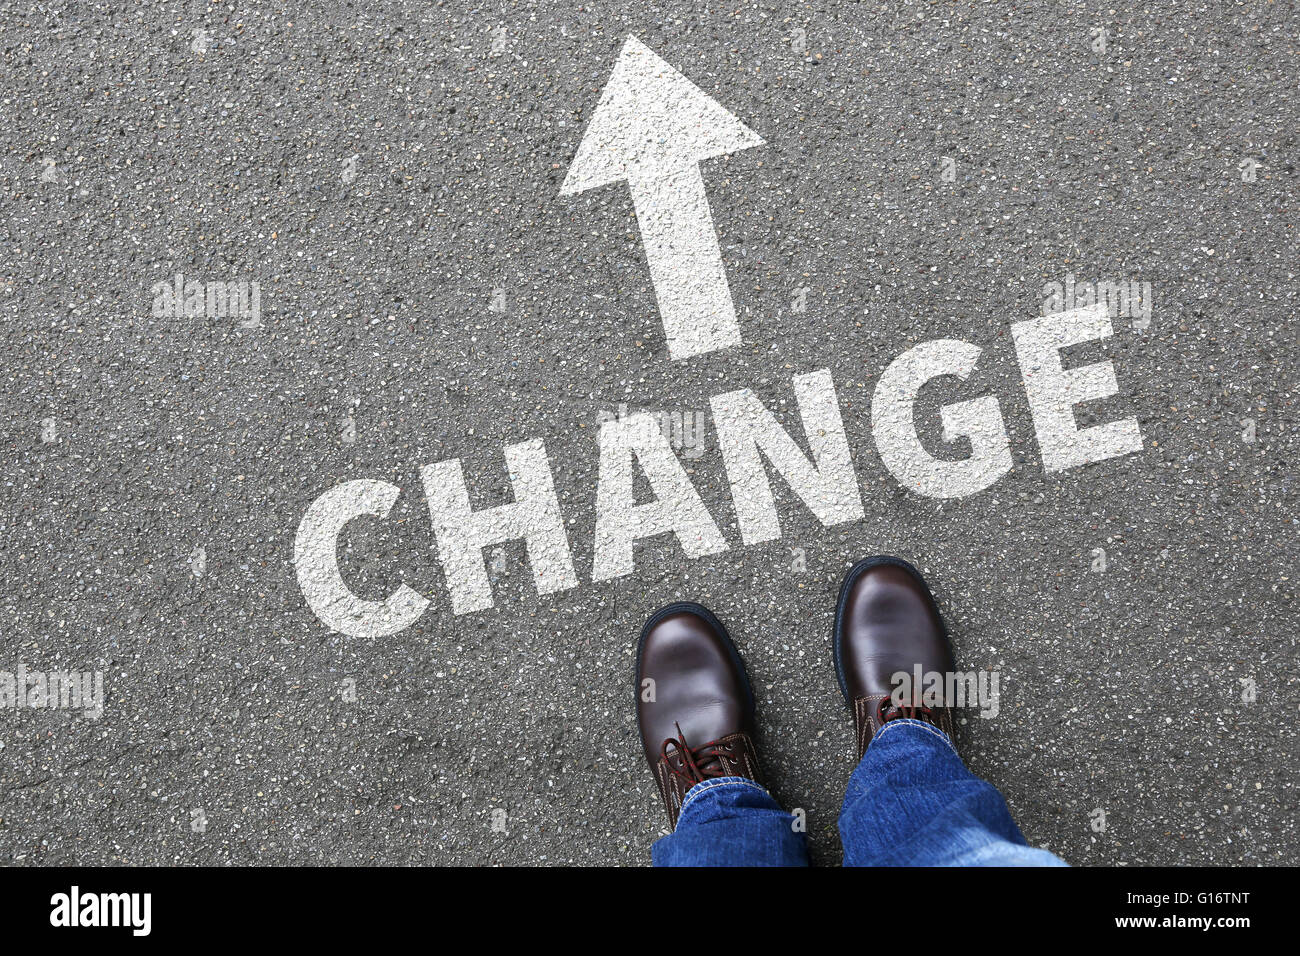 Change changing work job life changes concept vision Stock Photo